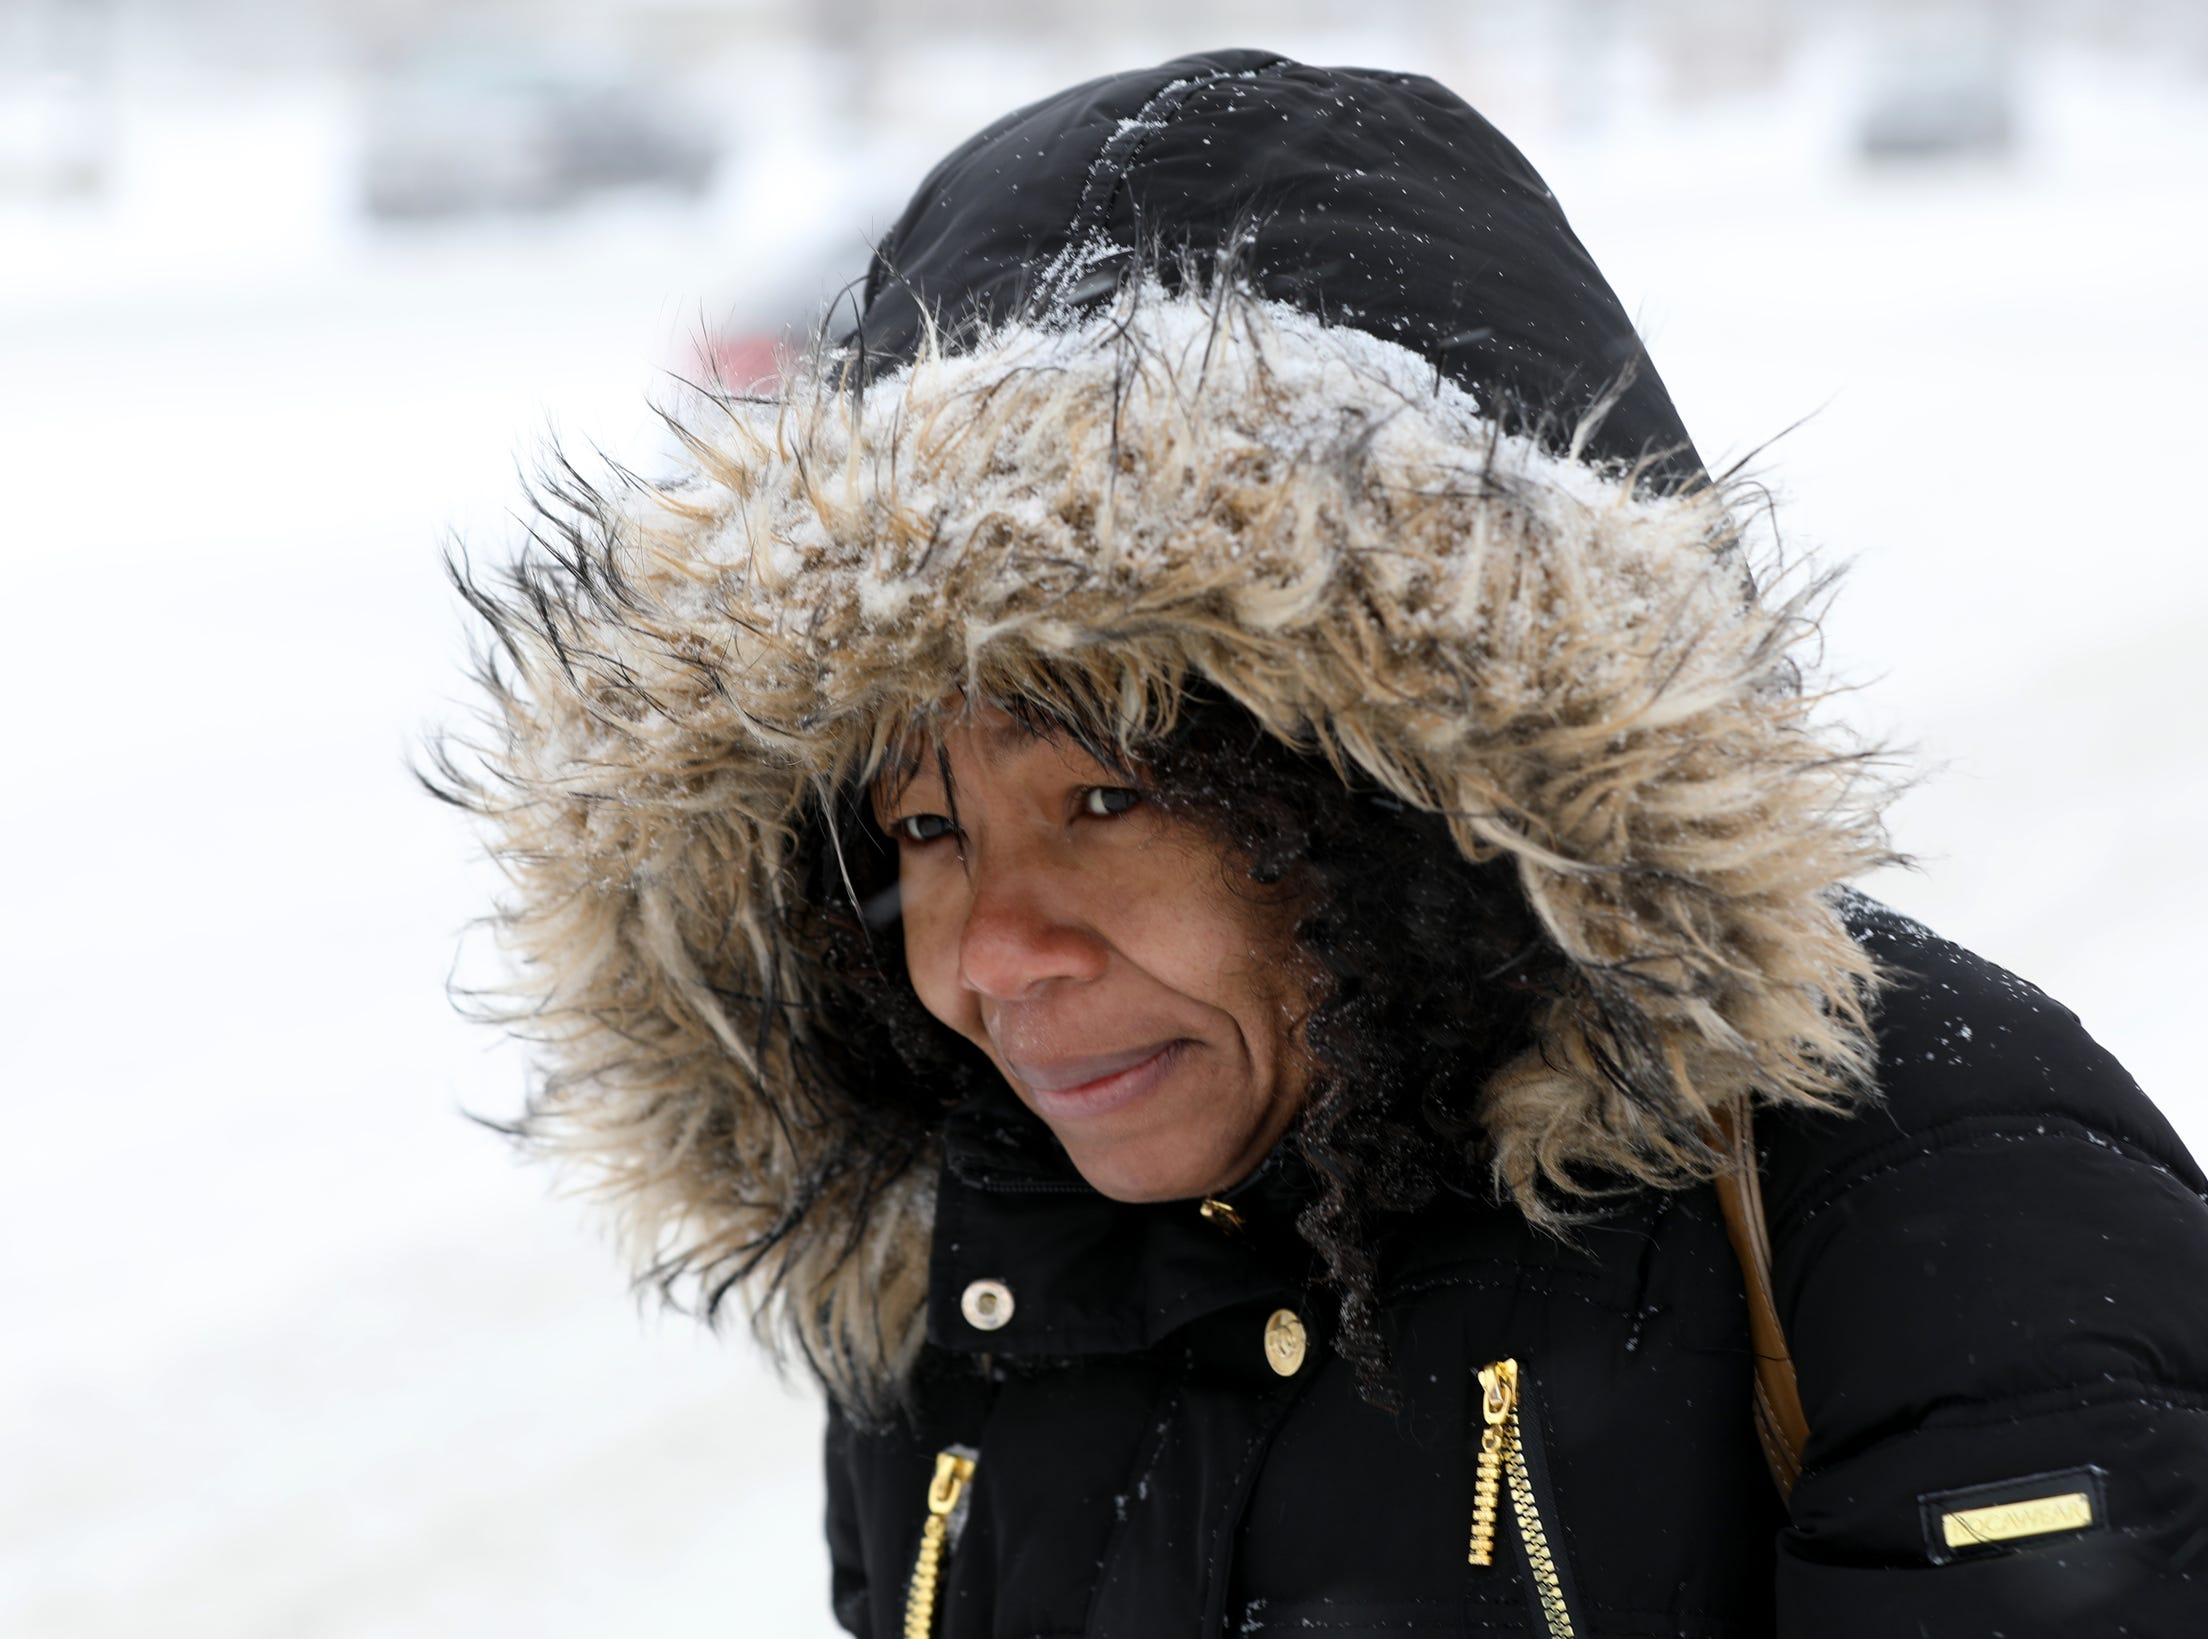 Patricia Brown, 41 of Detroit turns against the wind and blowing snow as she waits for the Woodward Avenue bus near Little Caesars Arena in Detroit on Saturday, January 19, 2019.